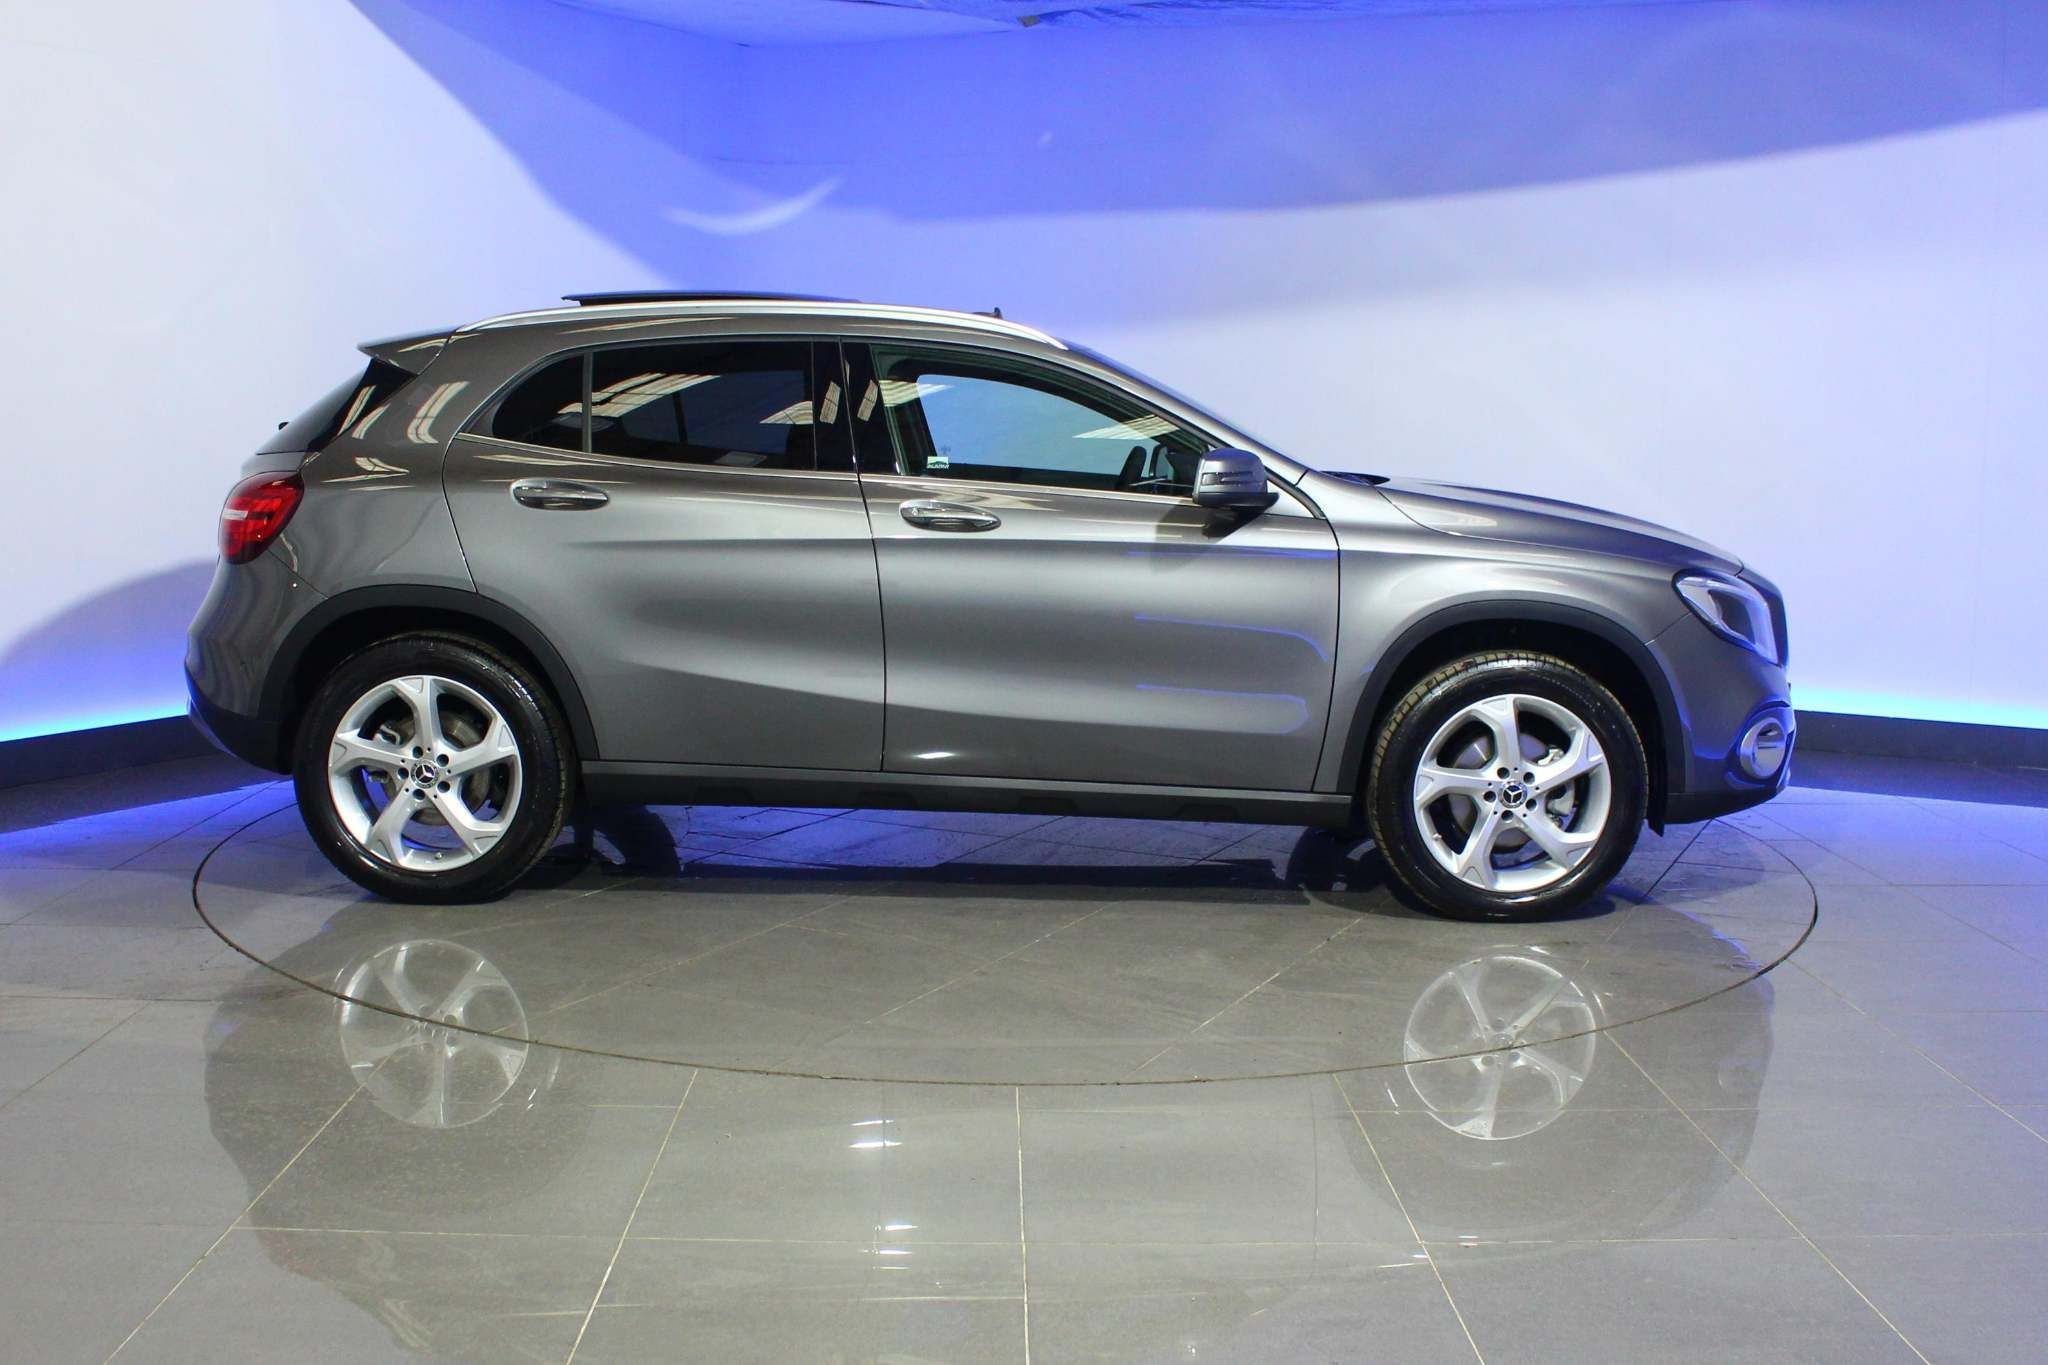 Used Mercedes-Benz GLA Class 1.6 Gla200 Sport (premium Plus) 7g-Dct (s/s) 5dr